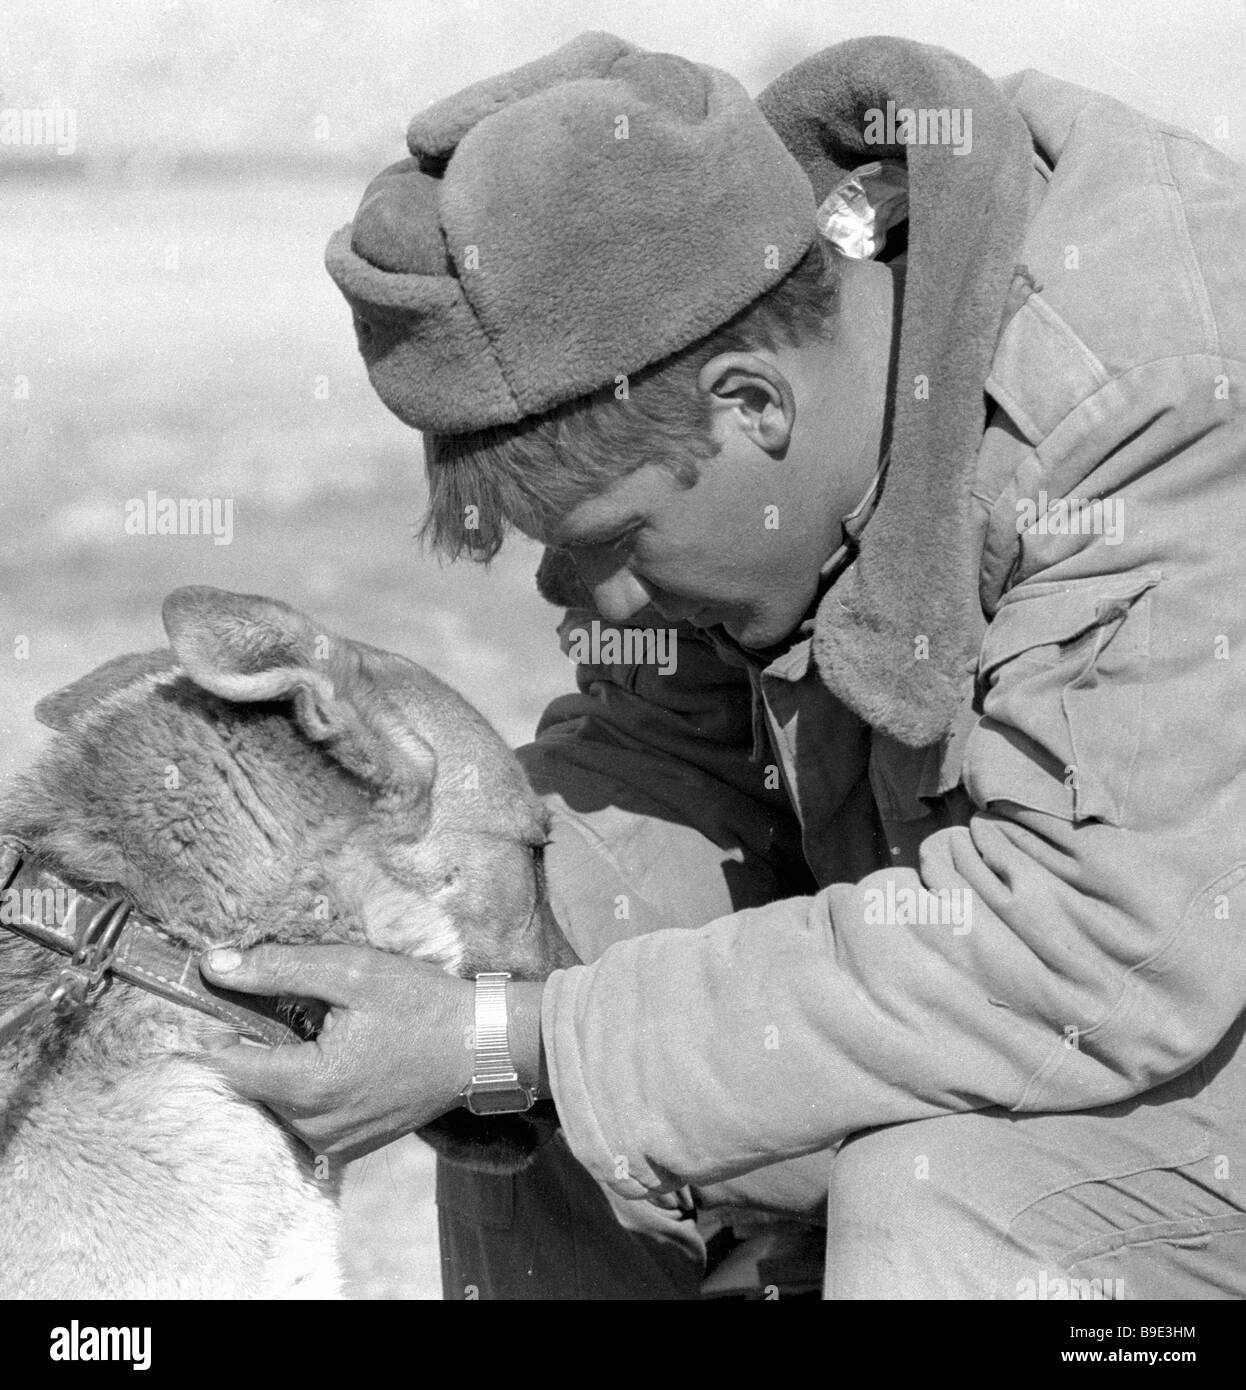 Soviet Afghanistan war - Page 6 A-soldier-says-goodbye-to-a-dog-soviet-troops-withdraw-from-afghanistan-B9E3HM